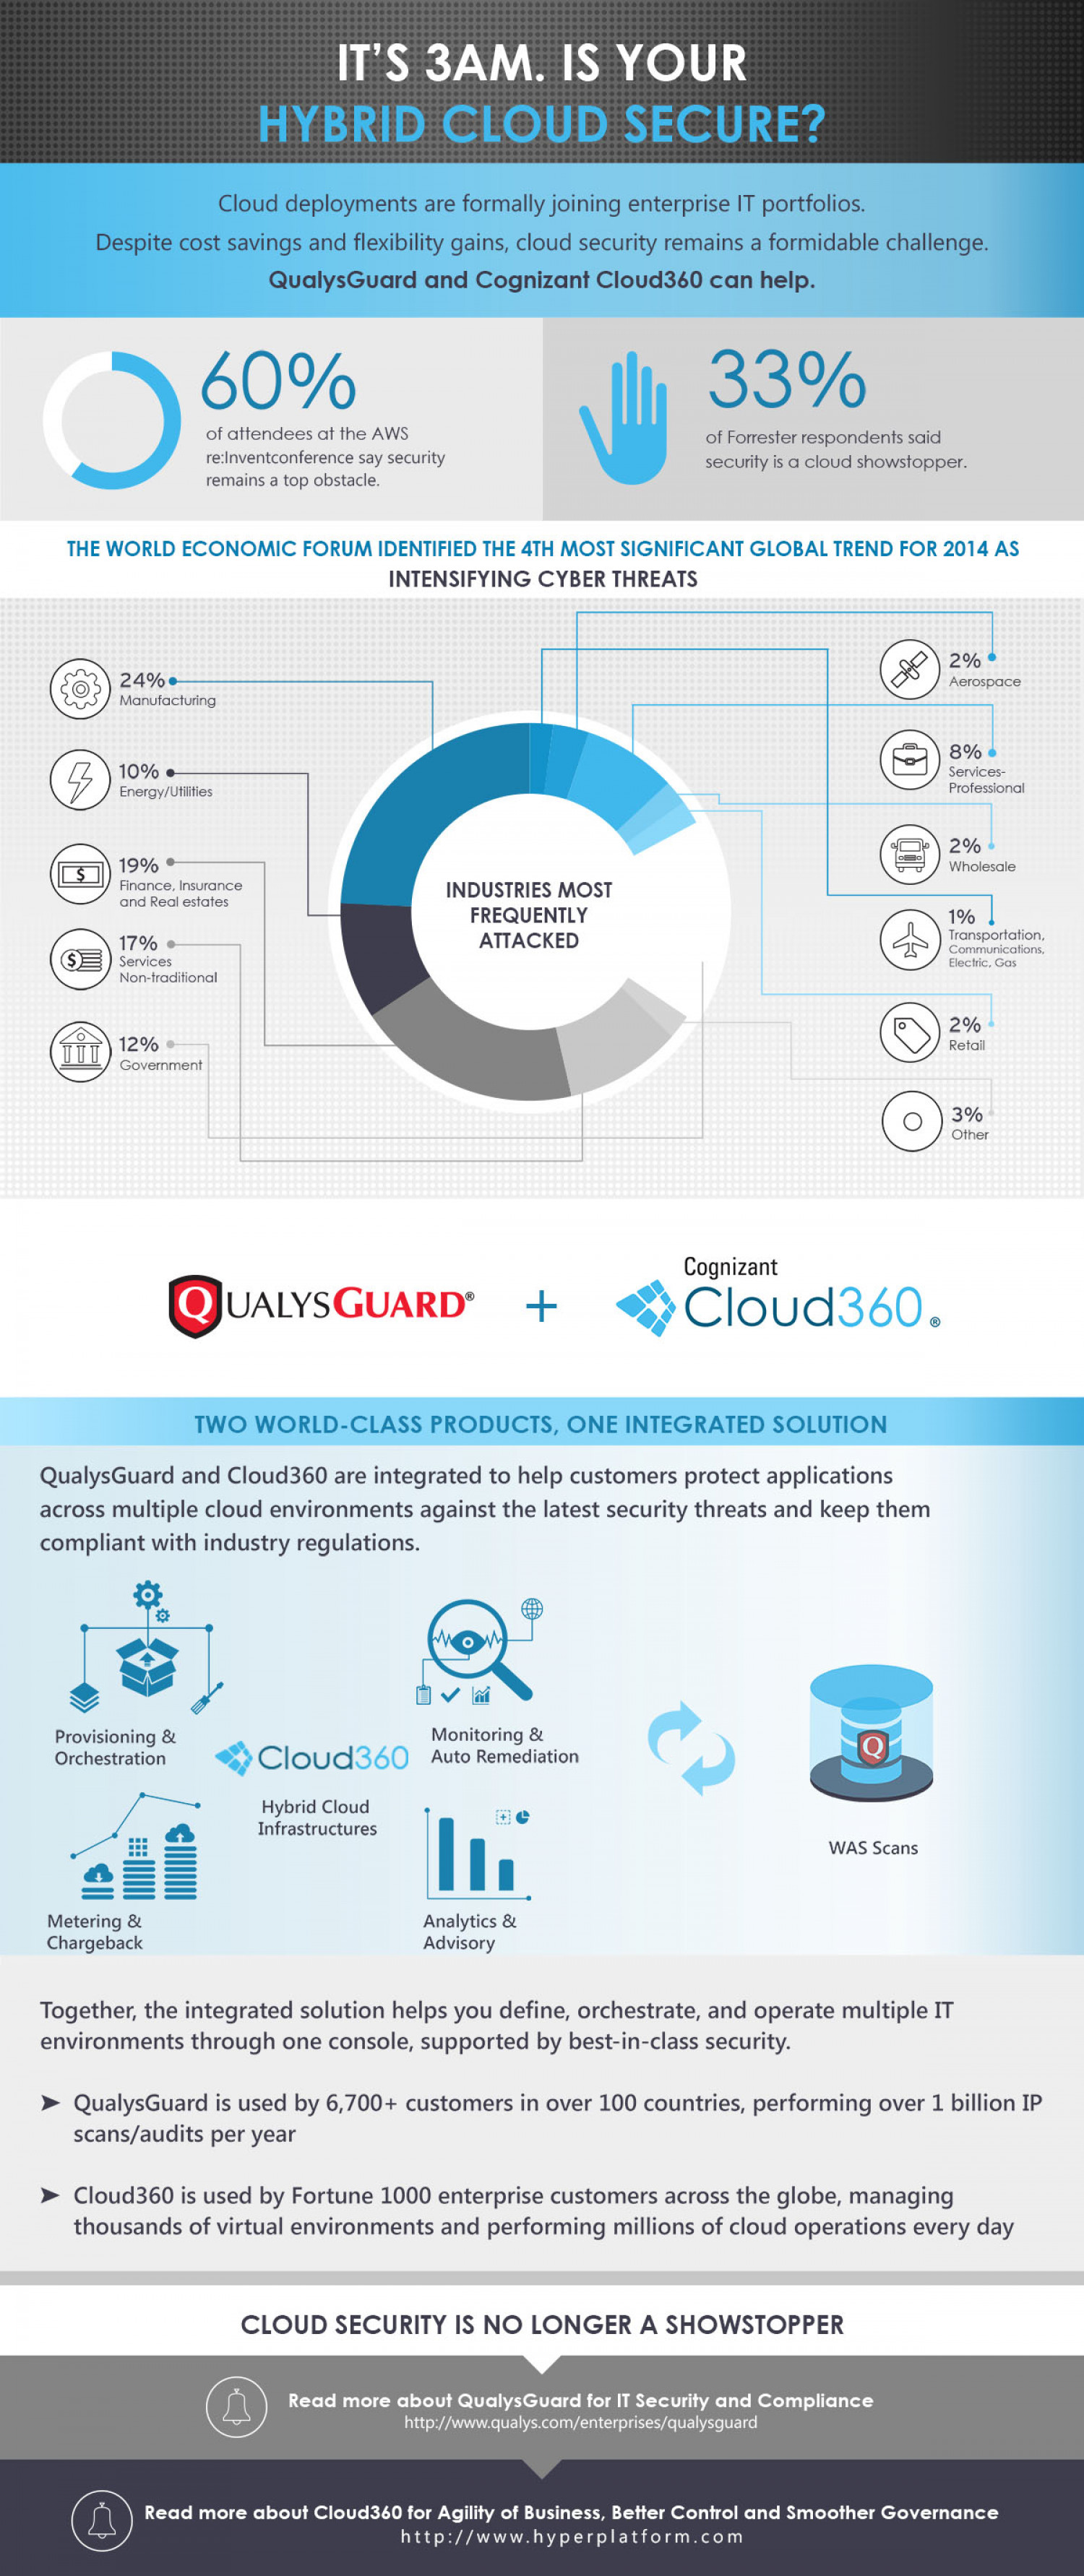 It's 3AM. Is Your Hybrid Cloud Secure? Infographic